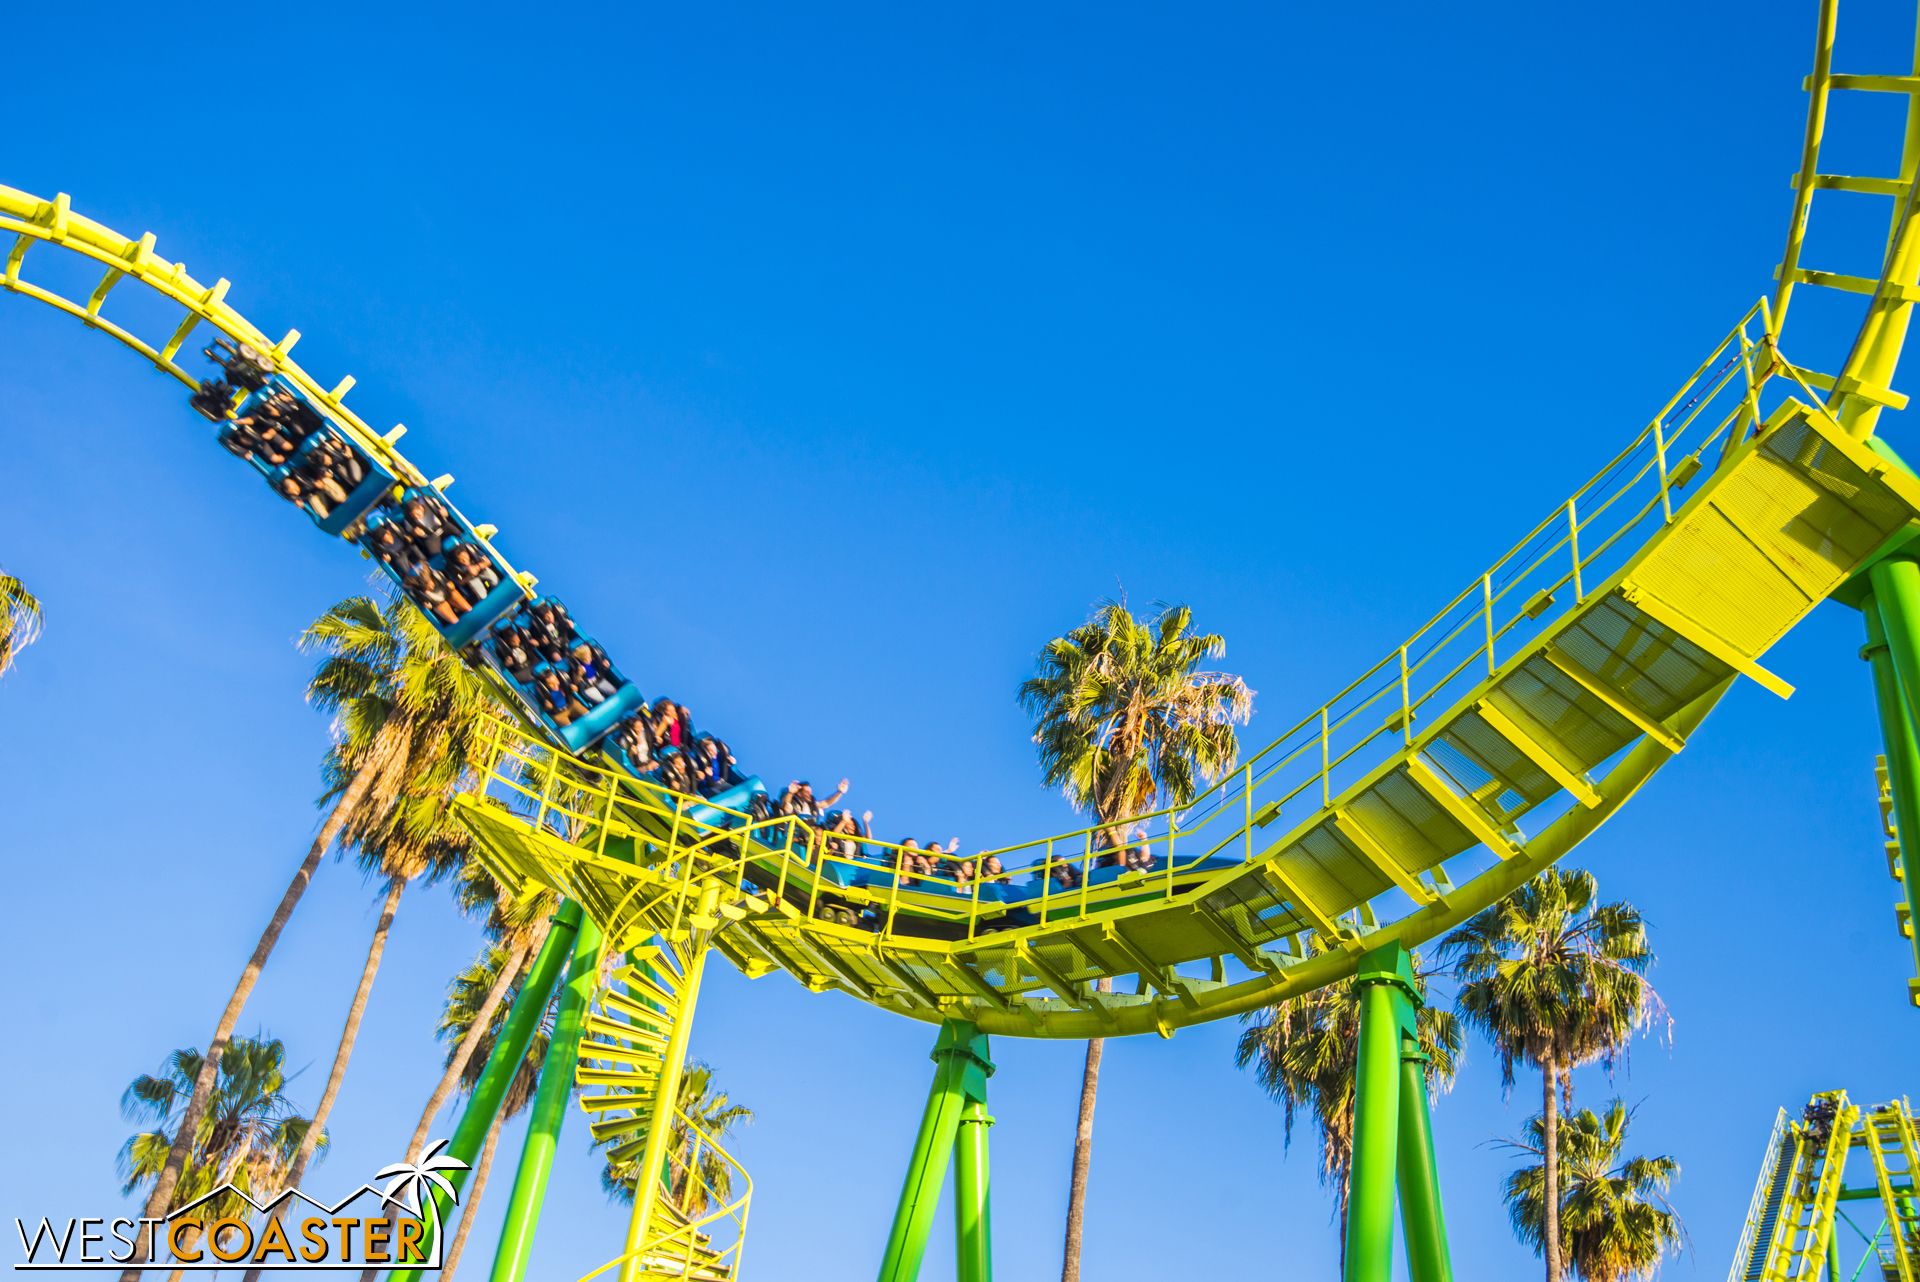 Still, for many, Boomerang has been a fixture at Knott's Berry Farm for most or all of their lives.